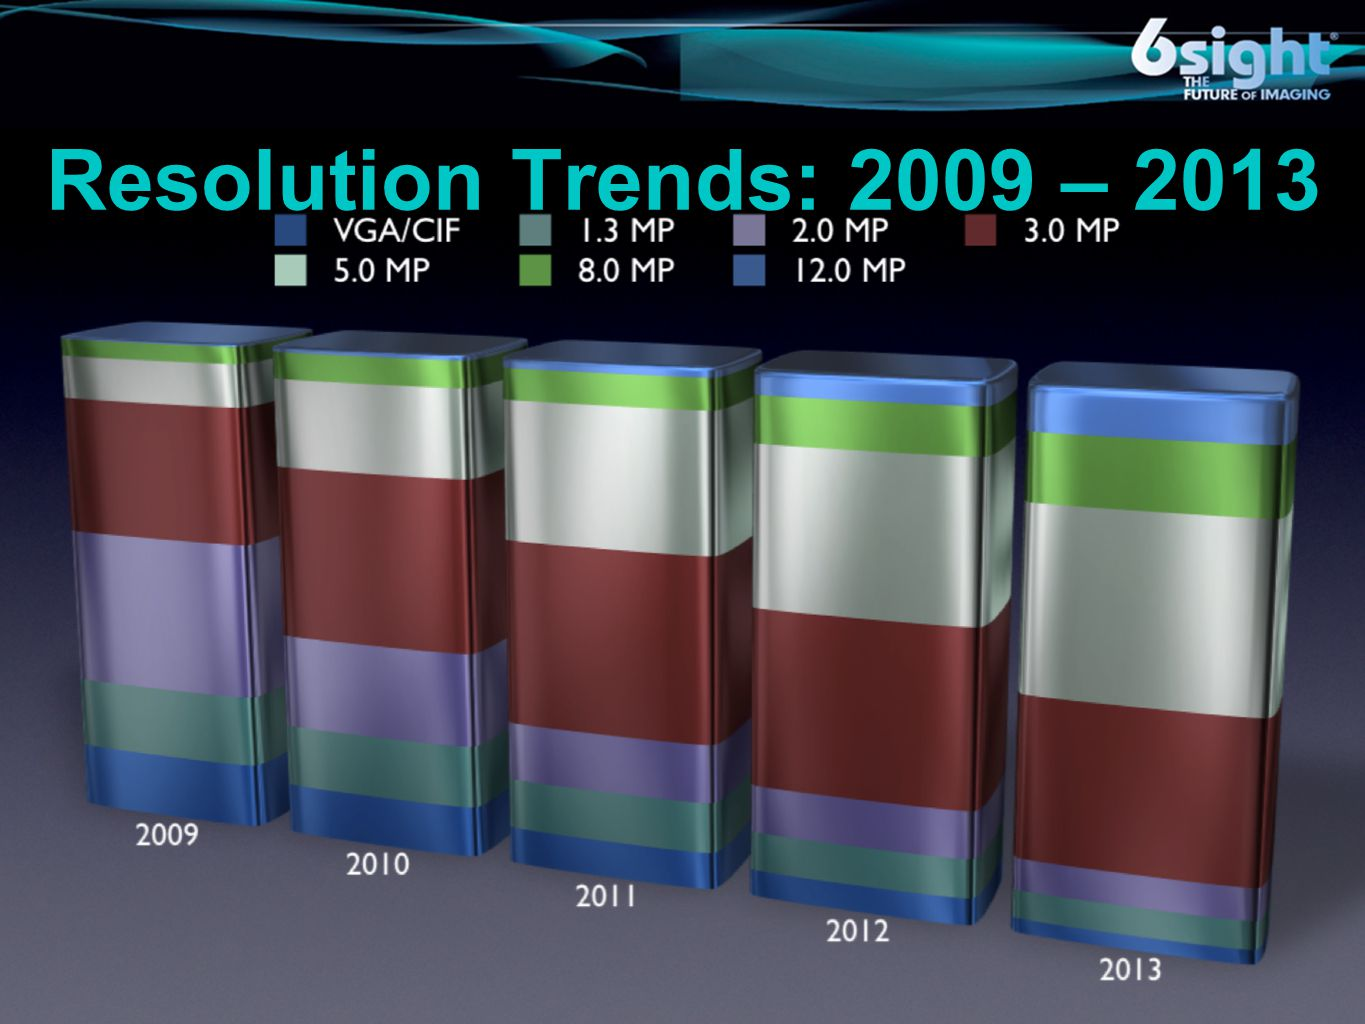 Resolution Trends: 2009 – 2013